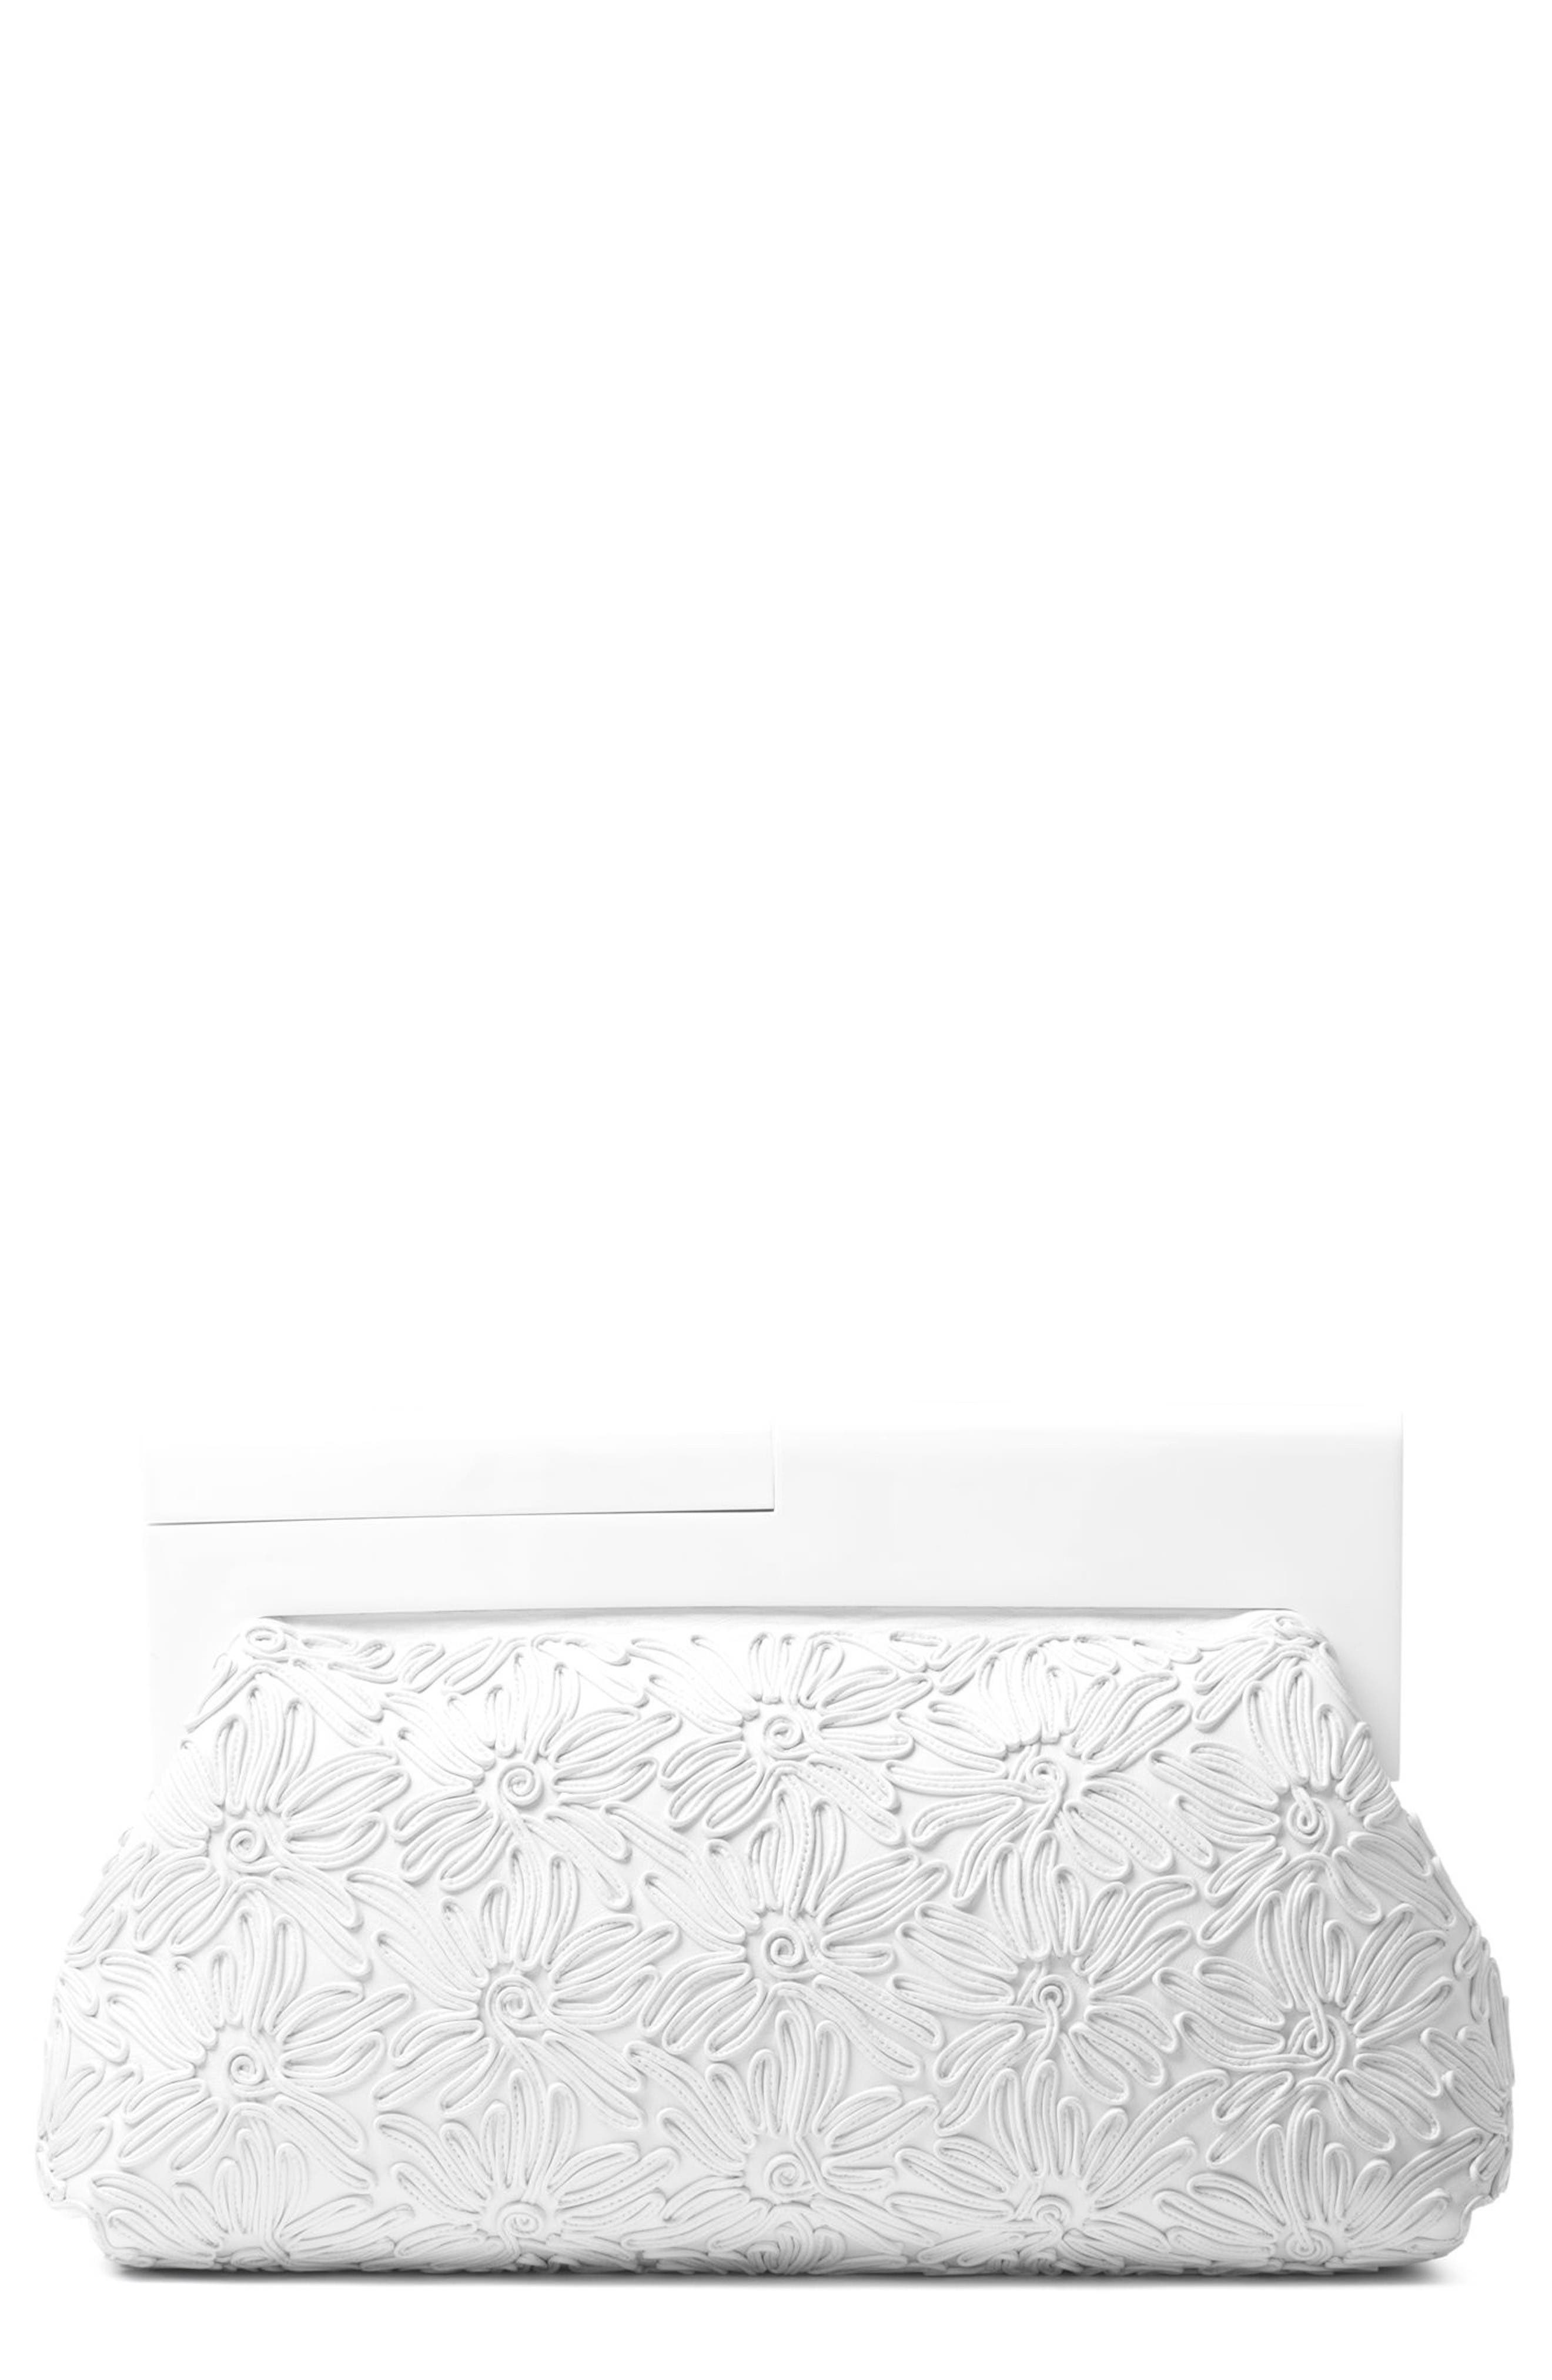 Alternate Image 1 Selected - Michael Kors Stanwyck Calfskin Leather Frame Clutch